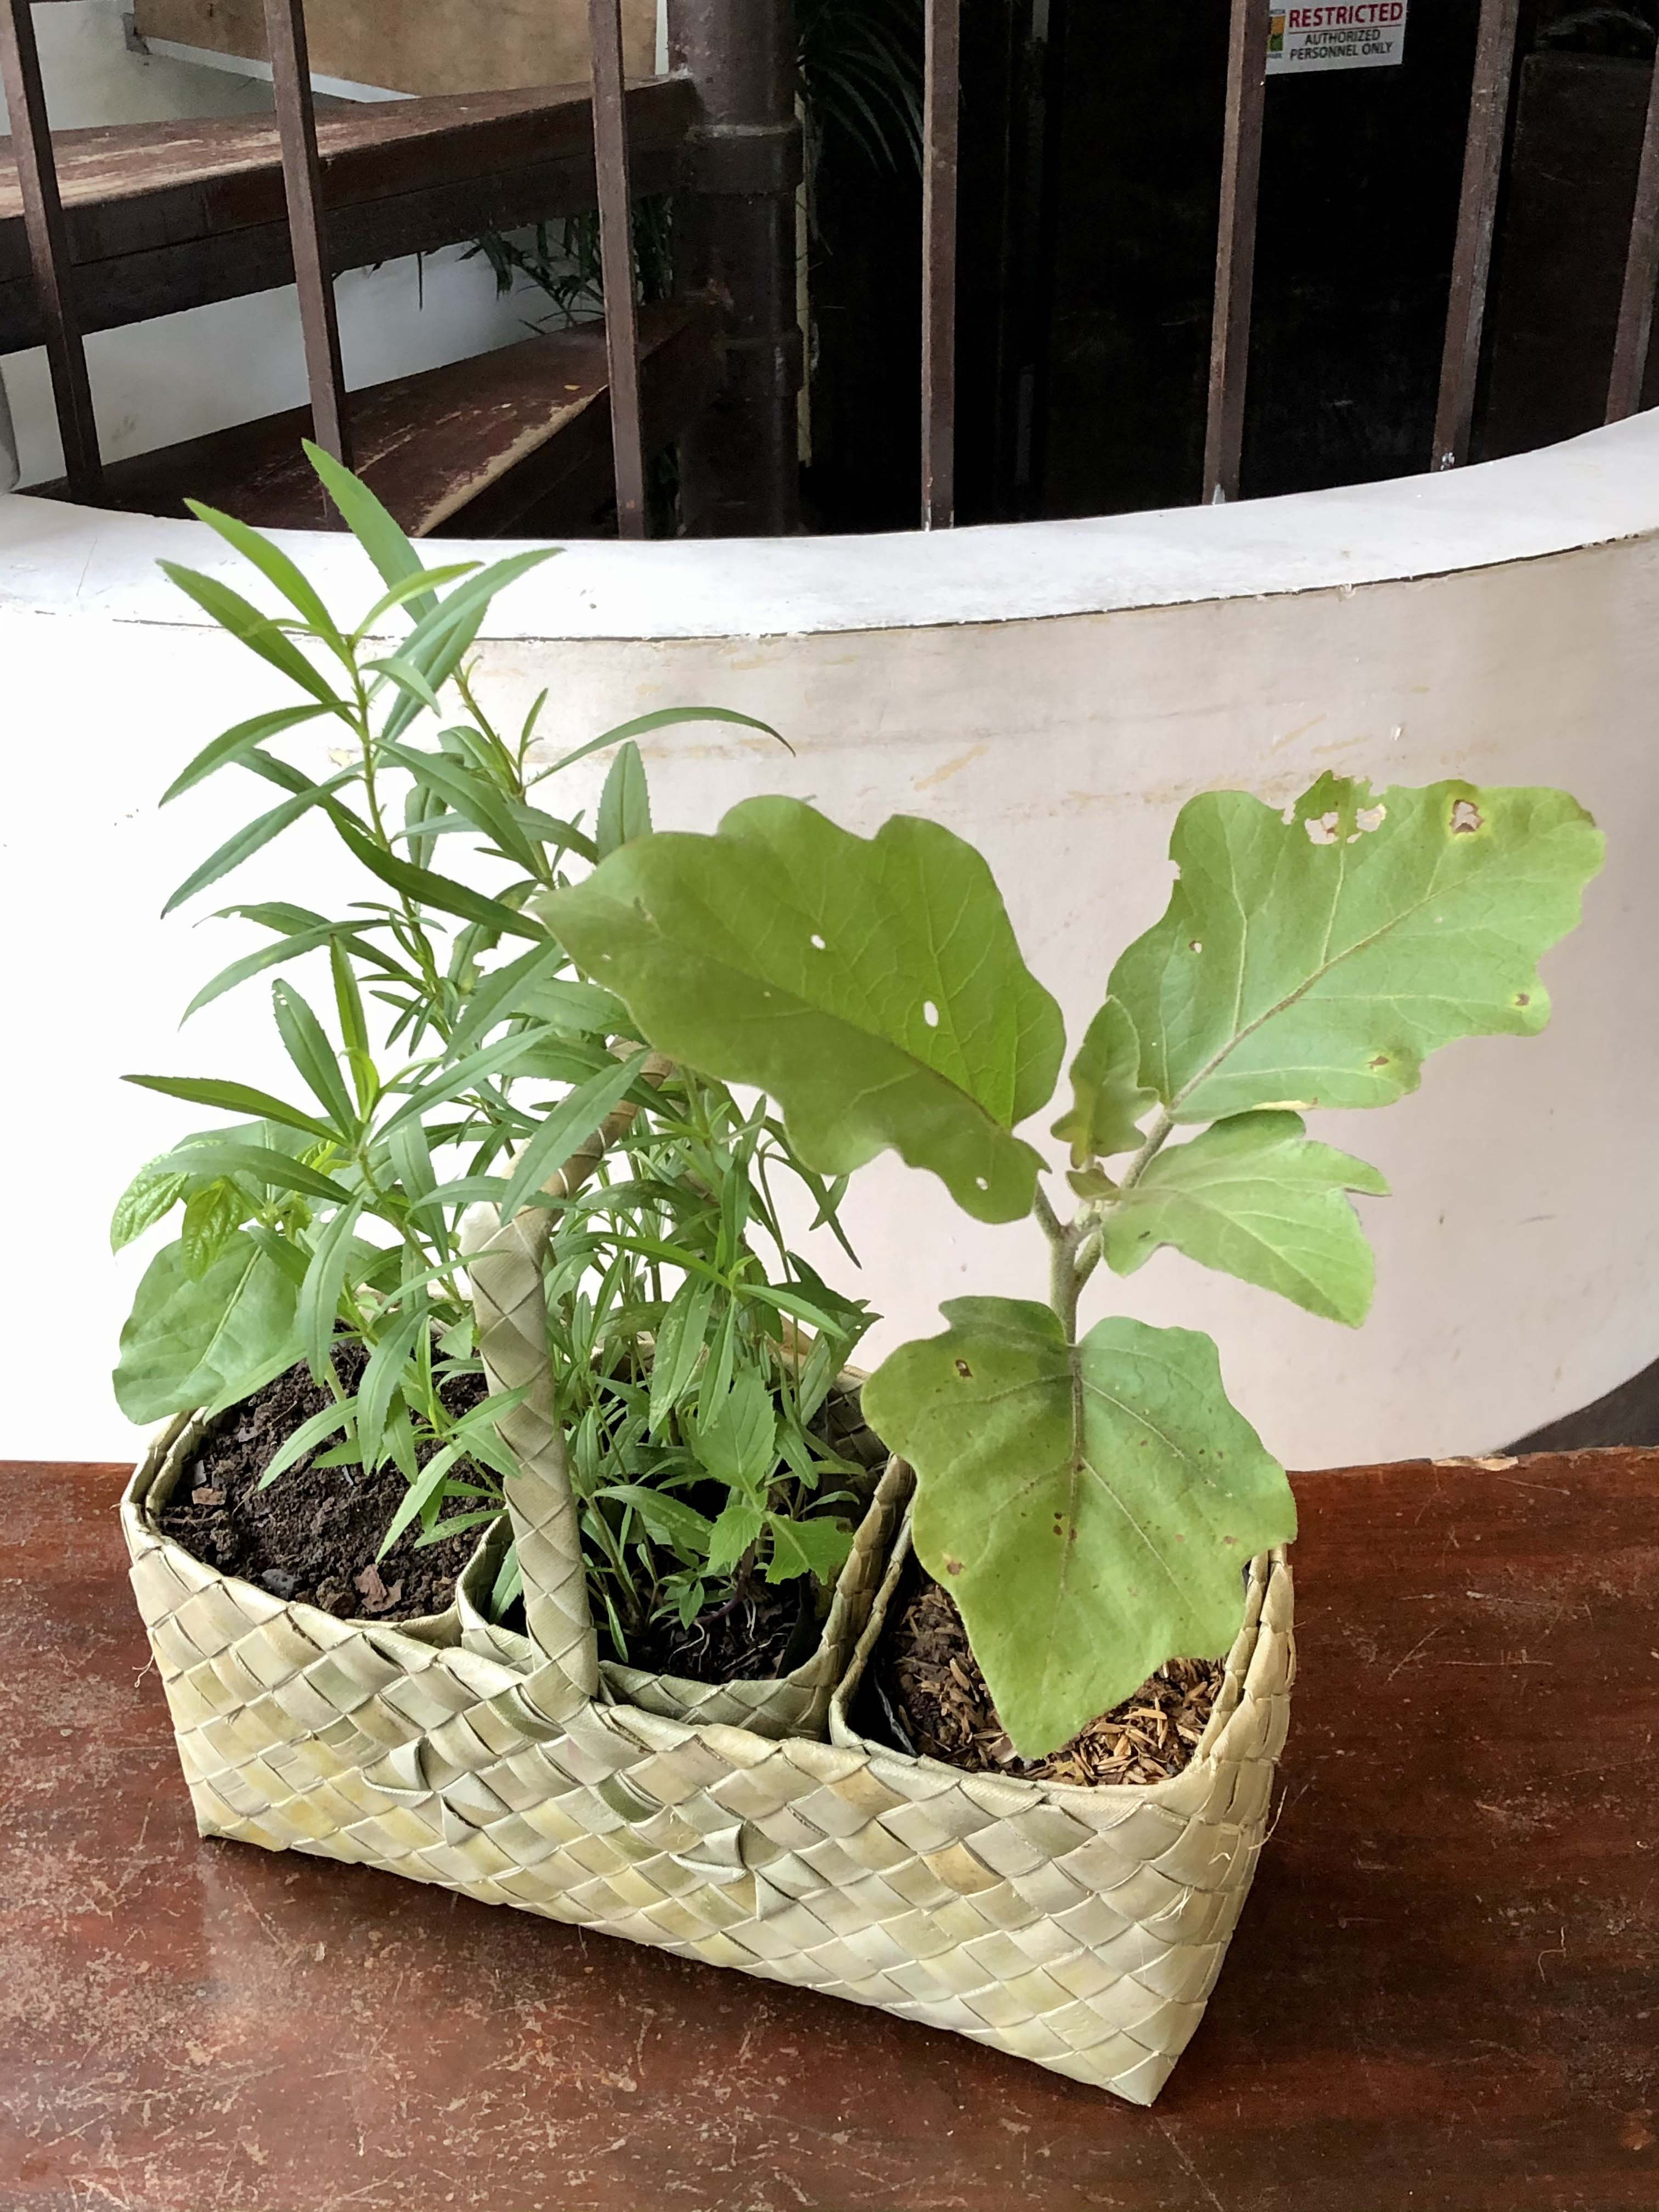 Urban farming starter kit, Quezon City